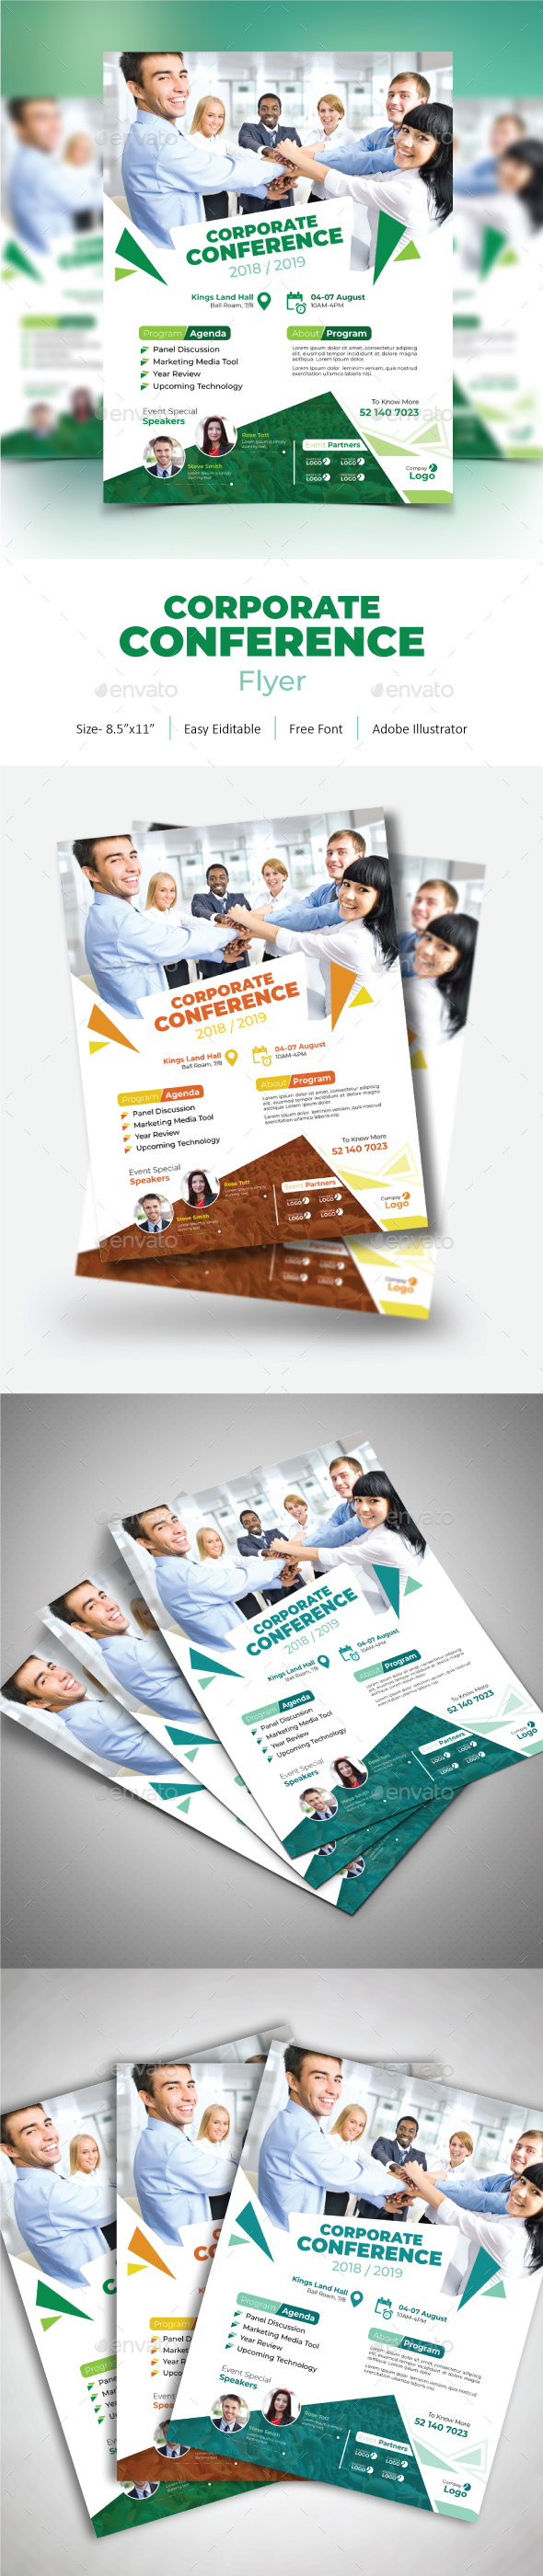 Corporate Conference Flyer - Corporate Flyers